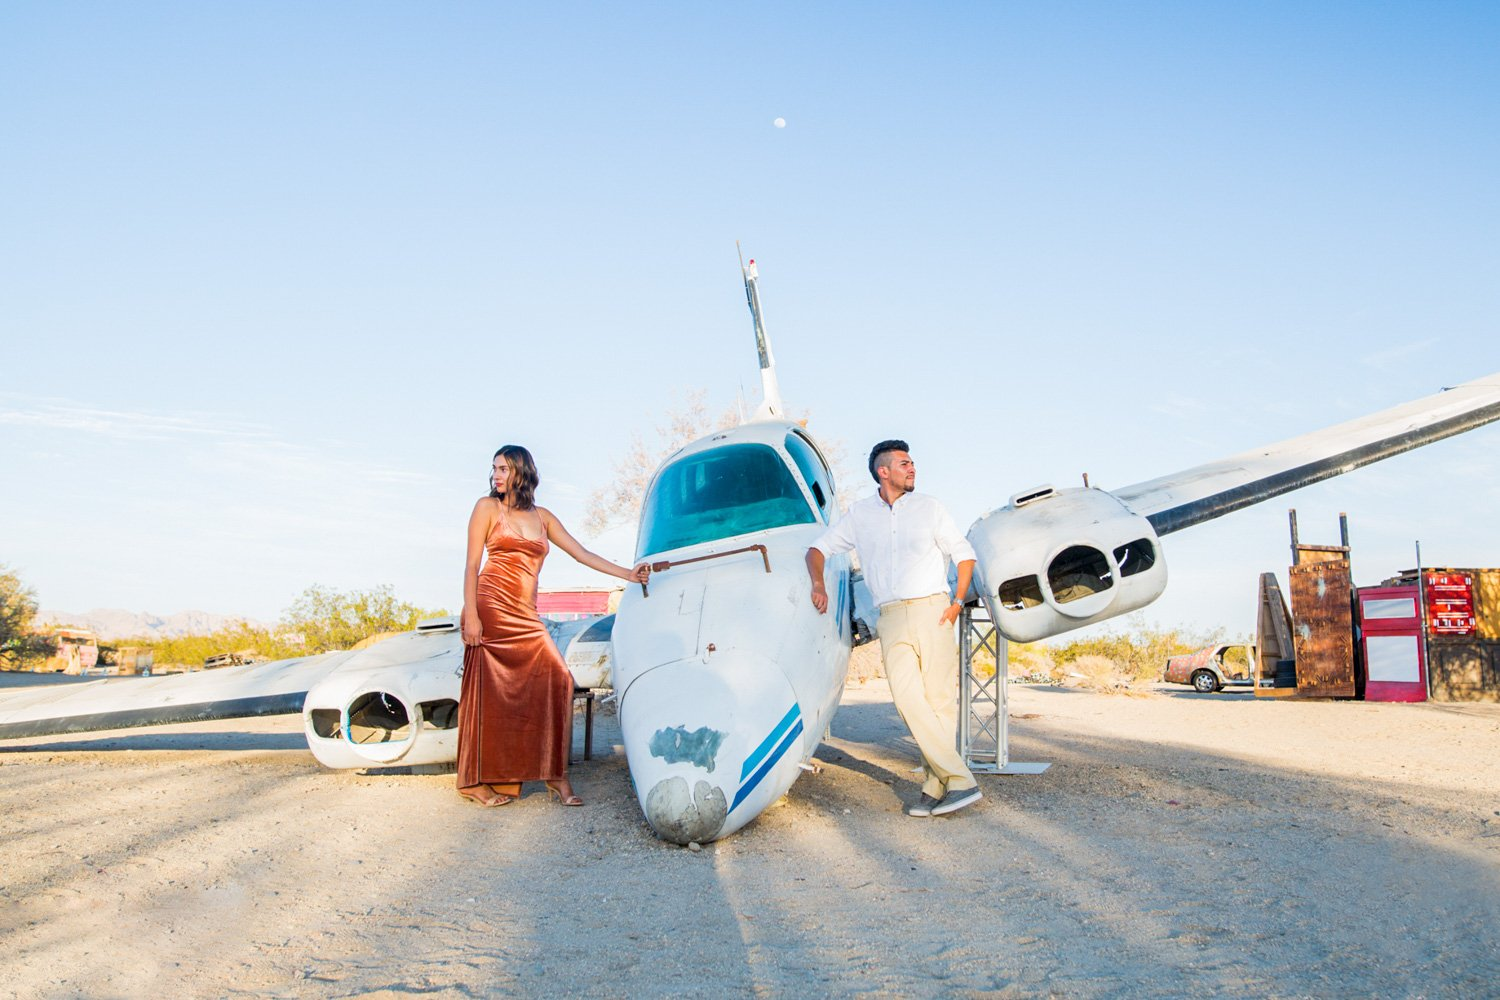 Engagement photo poses with a plane